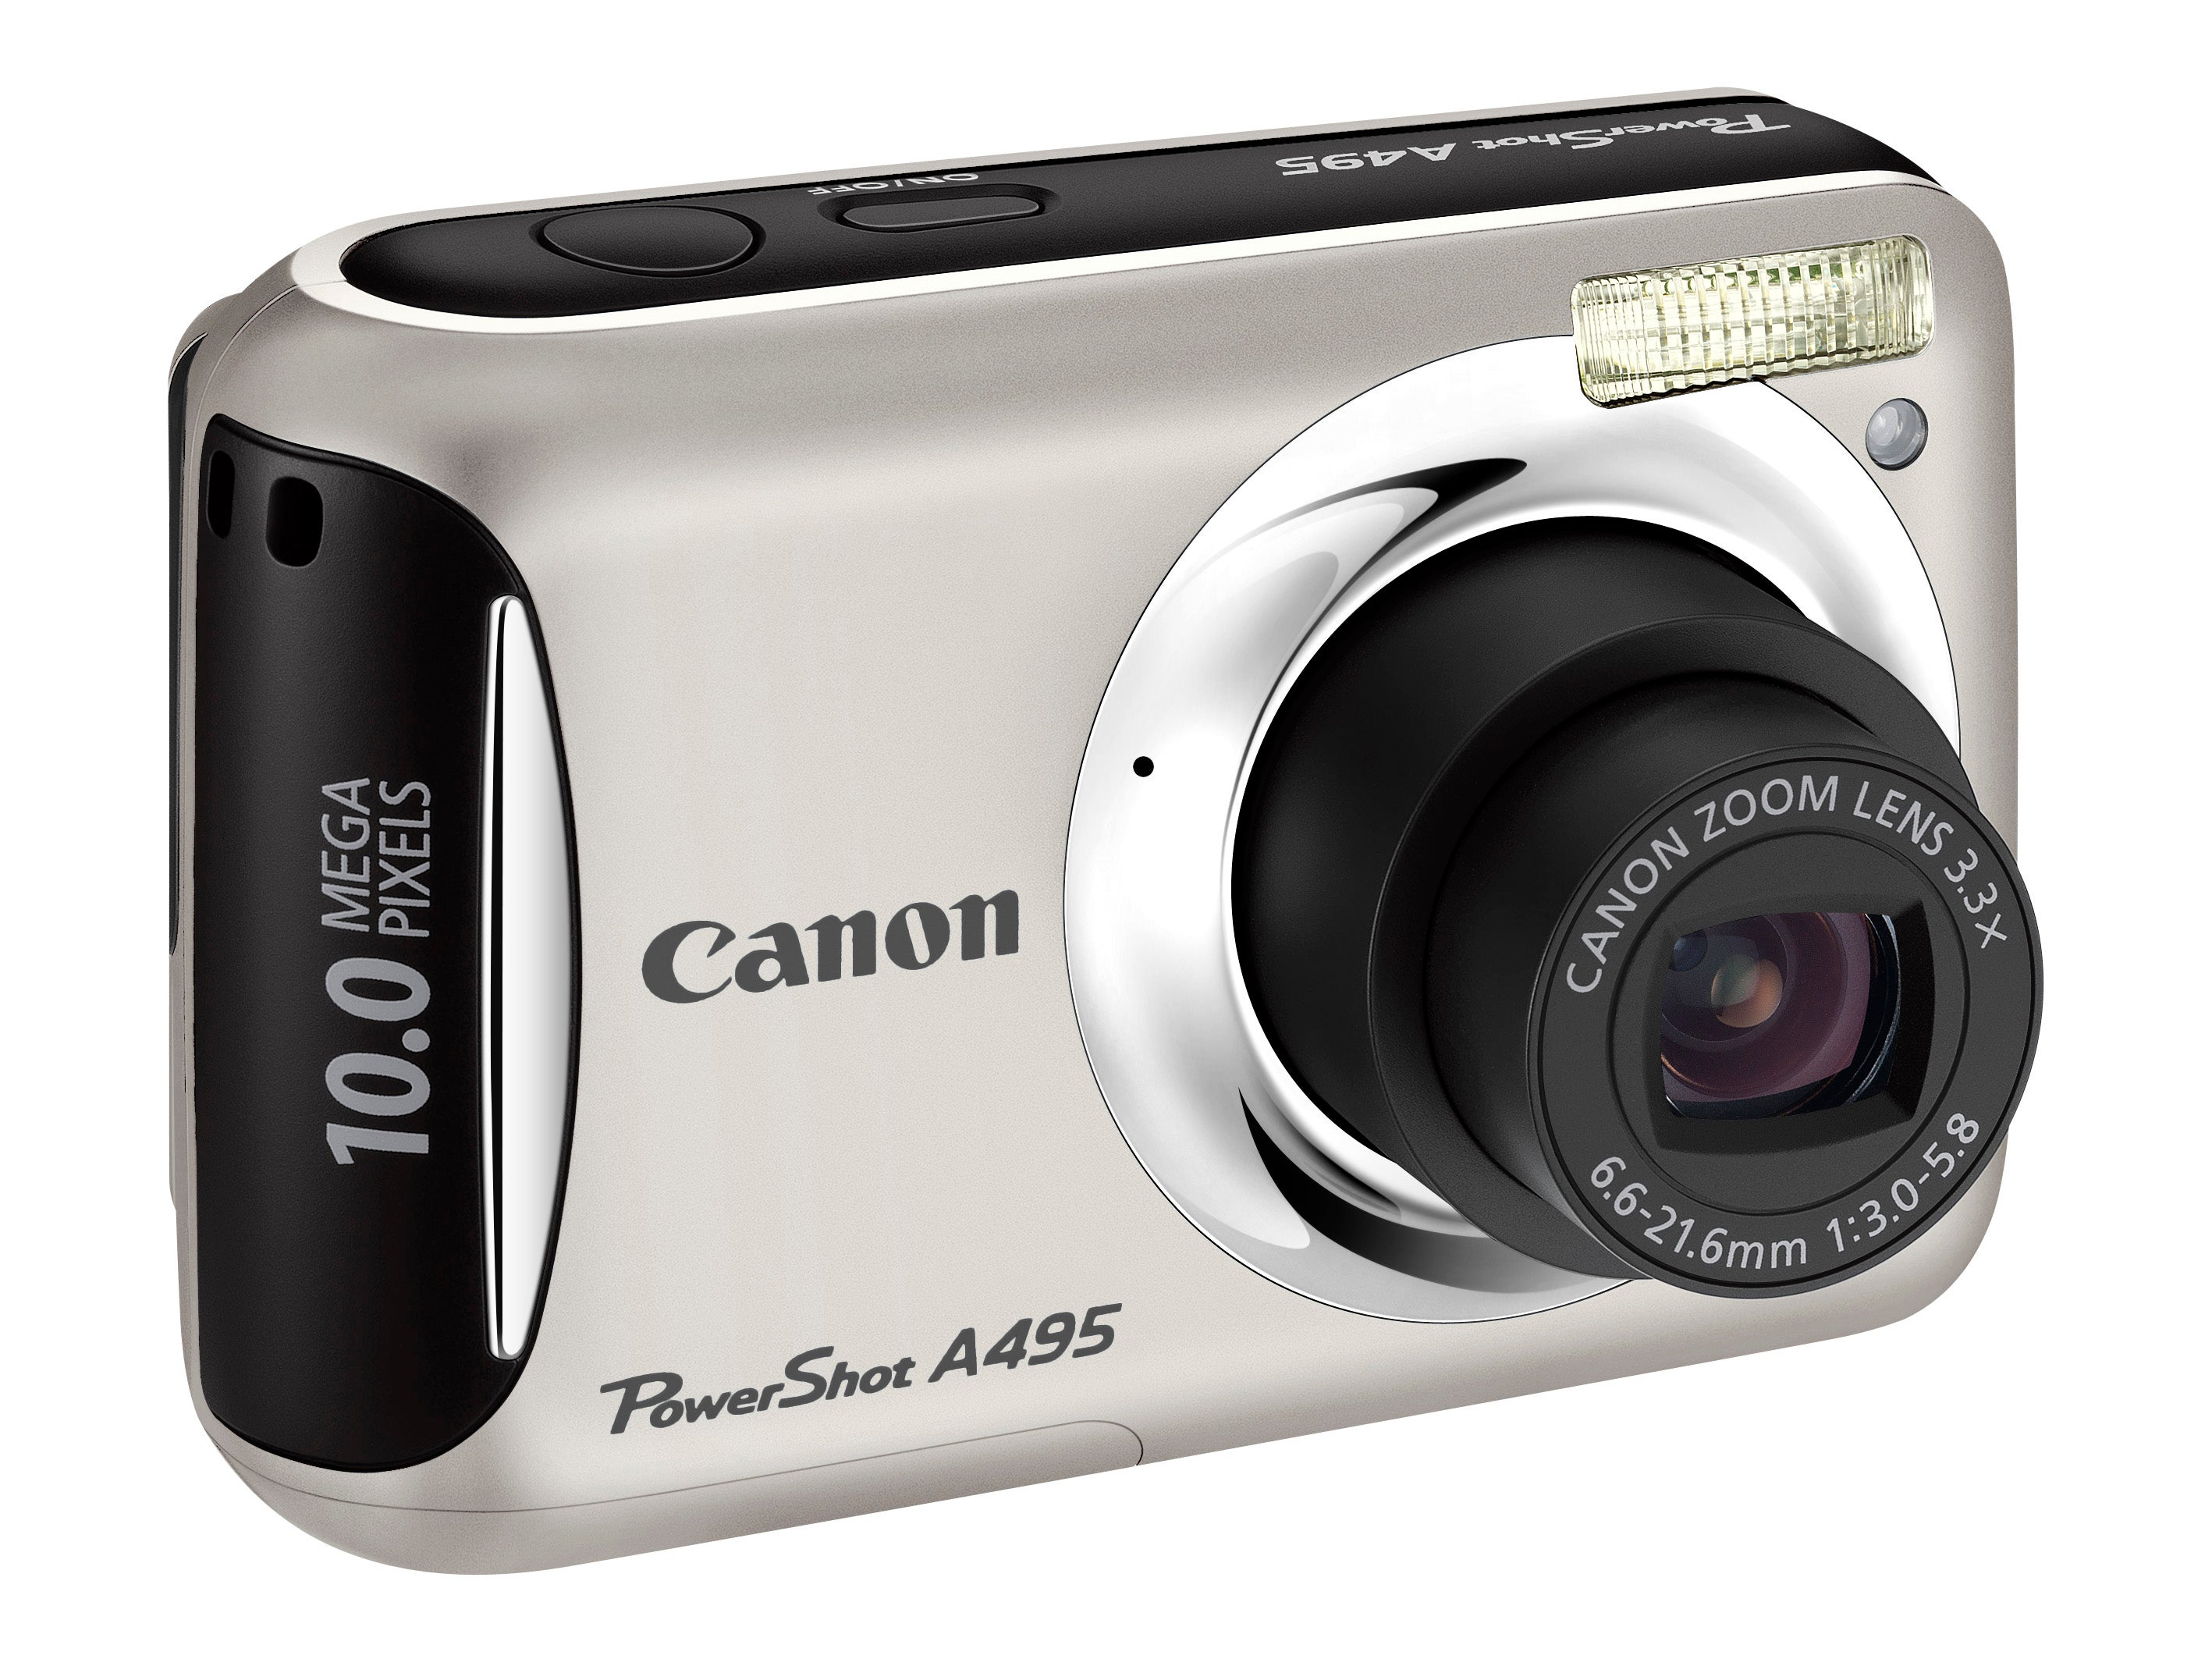 canon powershot a495 review what digital camera tests the canon a495 rh trustedreviews com Review Canon PowerShot A495 Tripods for a Canon PowerShot A495